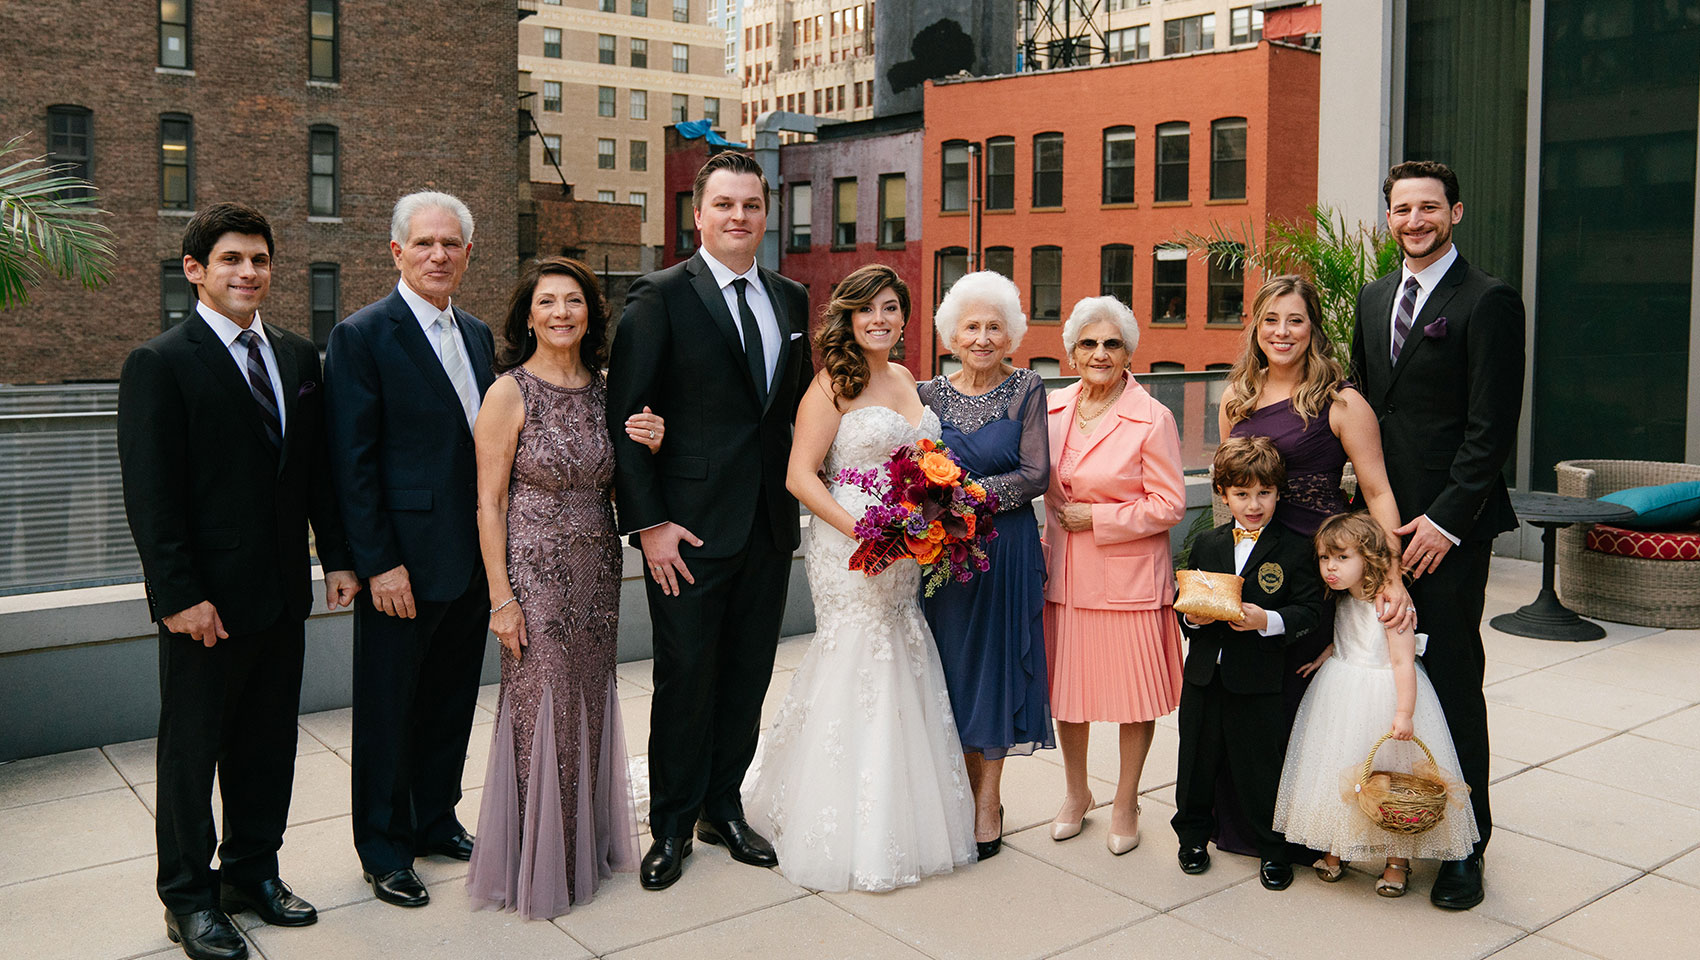 April and Daniel with family members on their wedding day